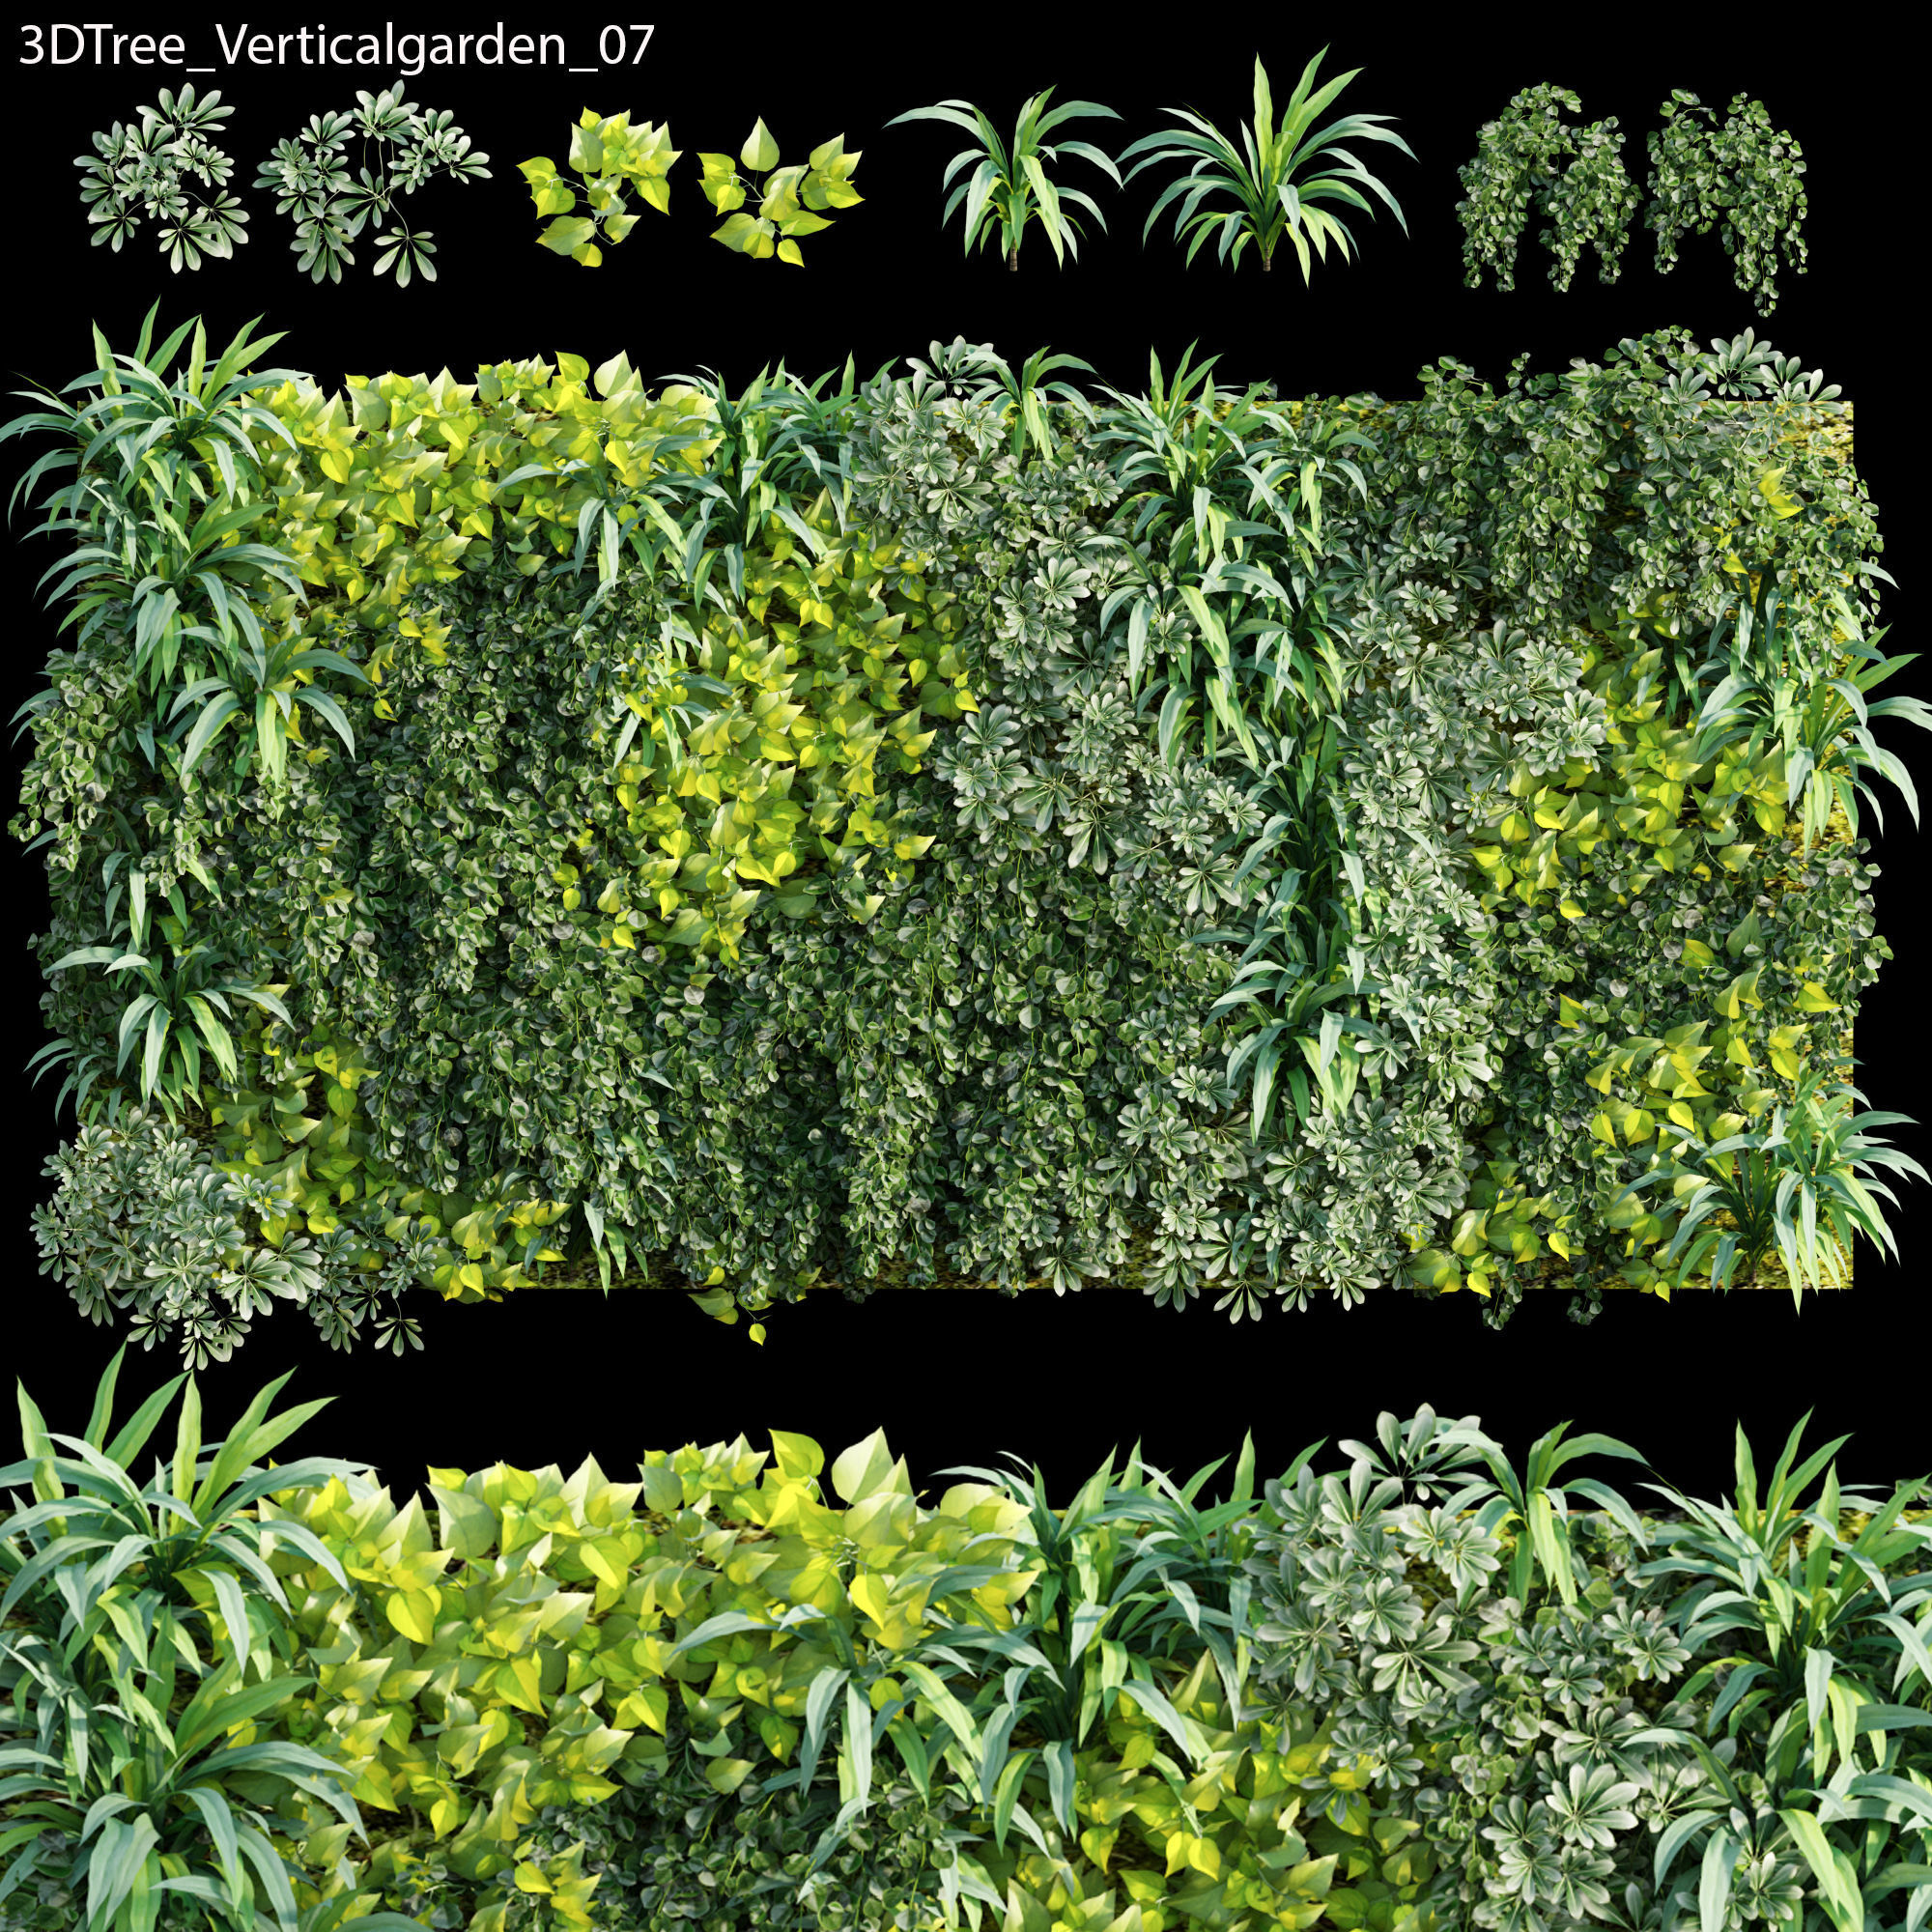 Verticalgarden - Green wall 07